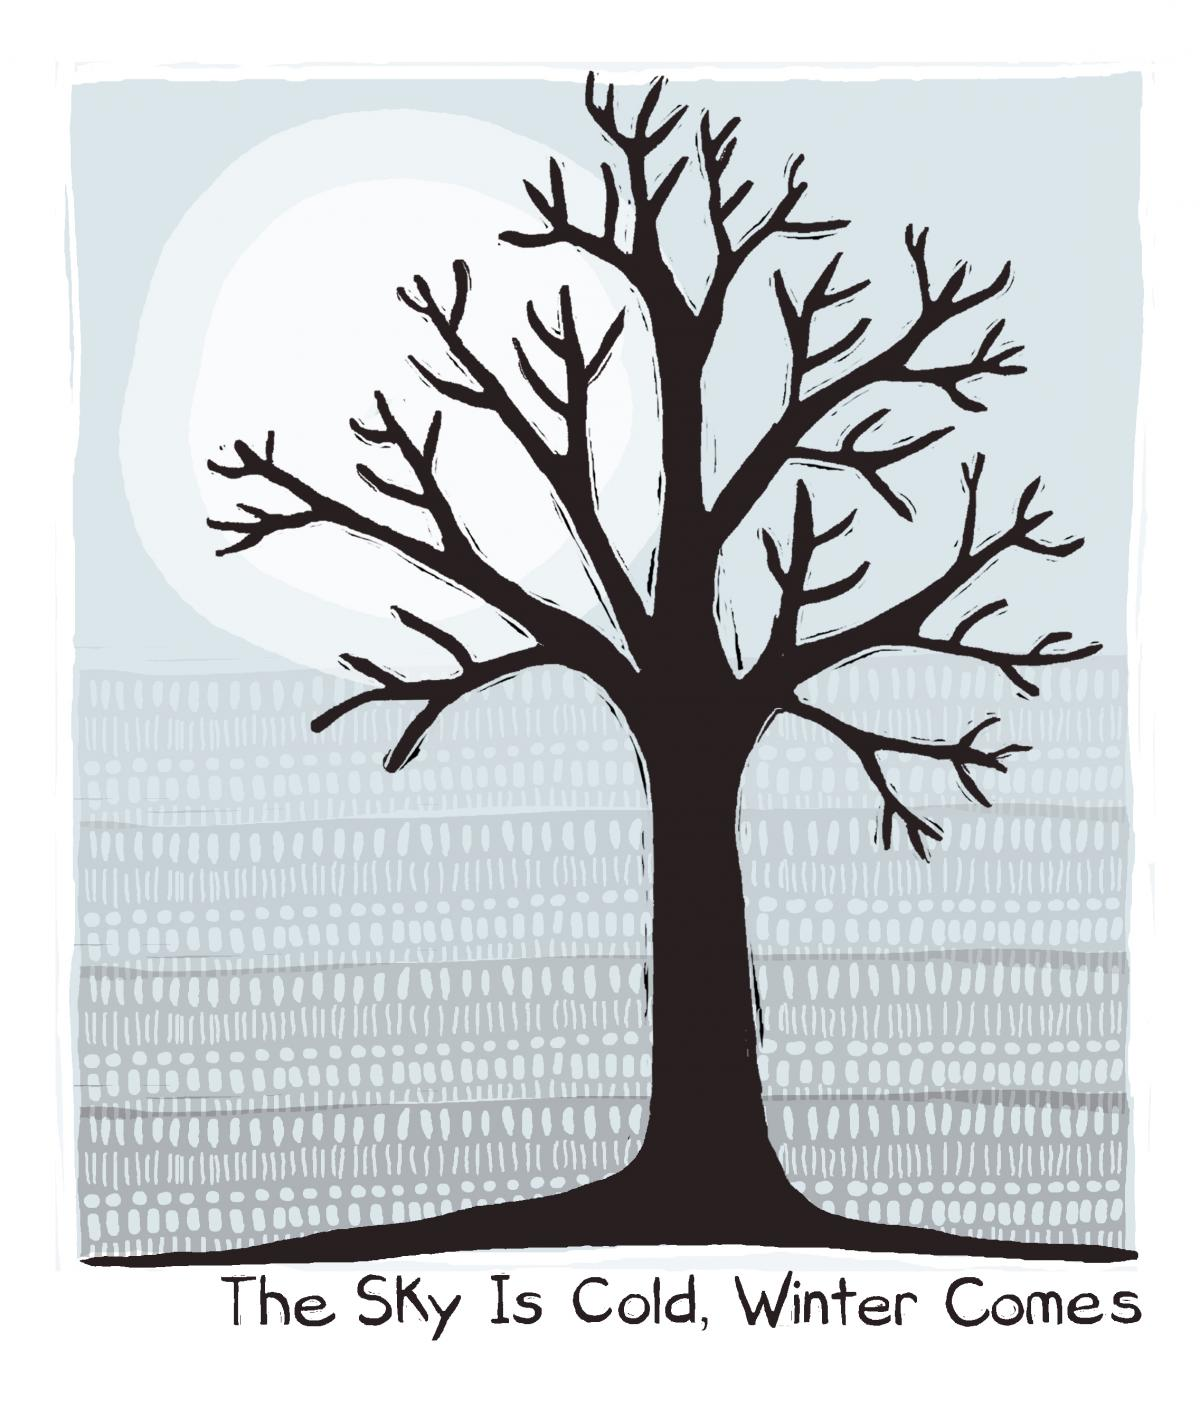 The Sky is Cold, Winter Comes - 72 Seasons Illustration